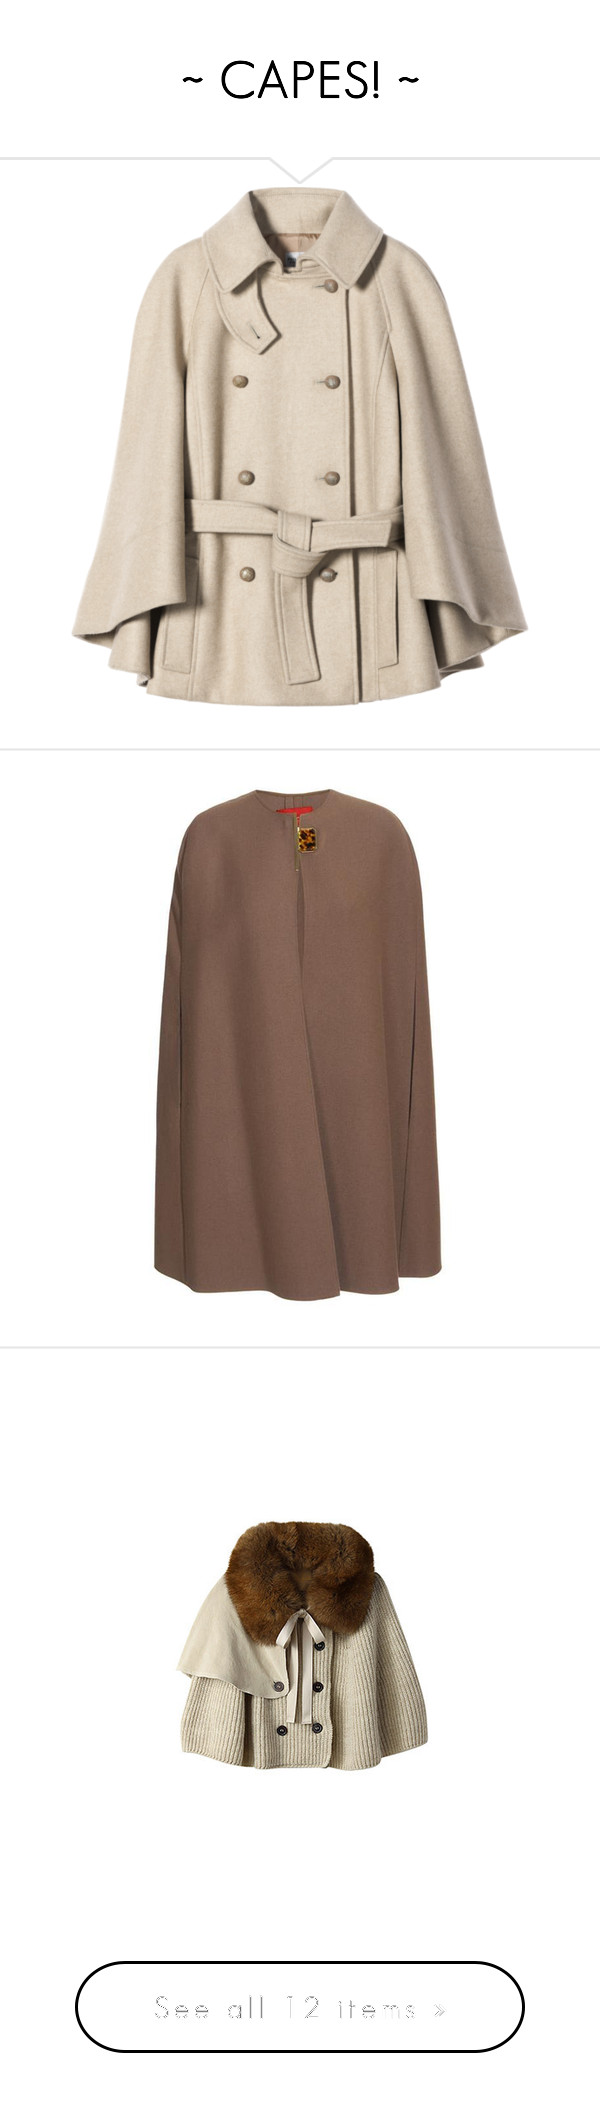 """""""~ CAPES! ~"""" by melyjelly ❤ liked on Polyvore featuring outerwear, coats, jackets, tops, fnoshop, short coat, philosophy di alberta ferretti, philosophy di alberta ferretti coat, short cape and pink cape"""